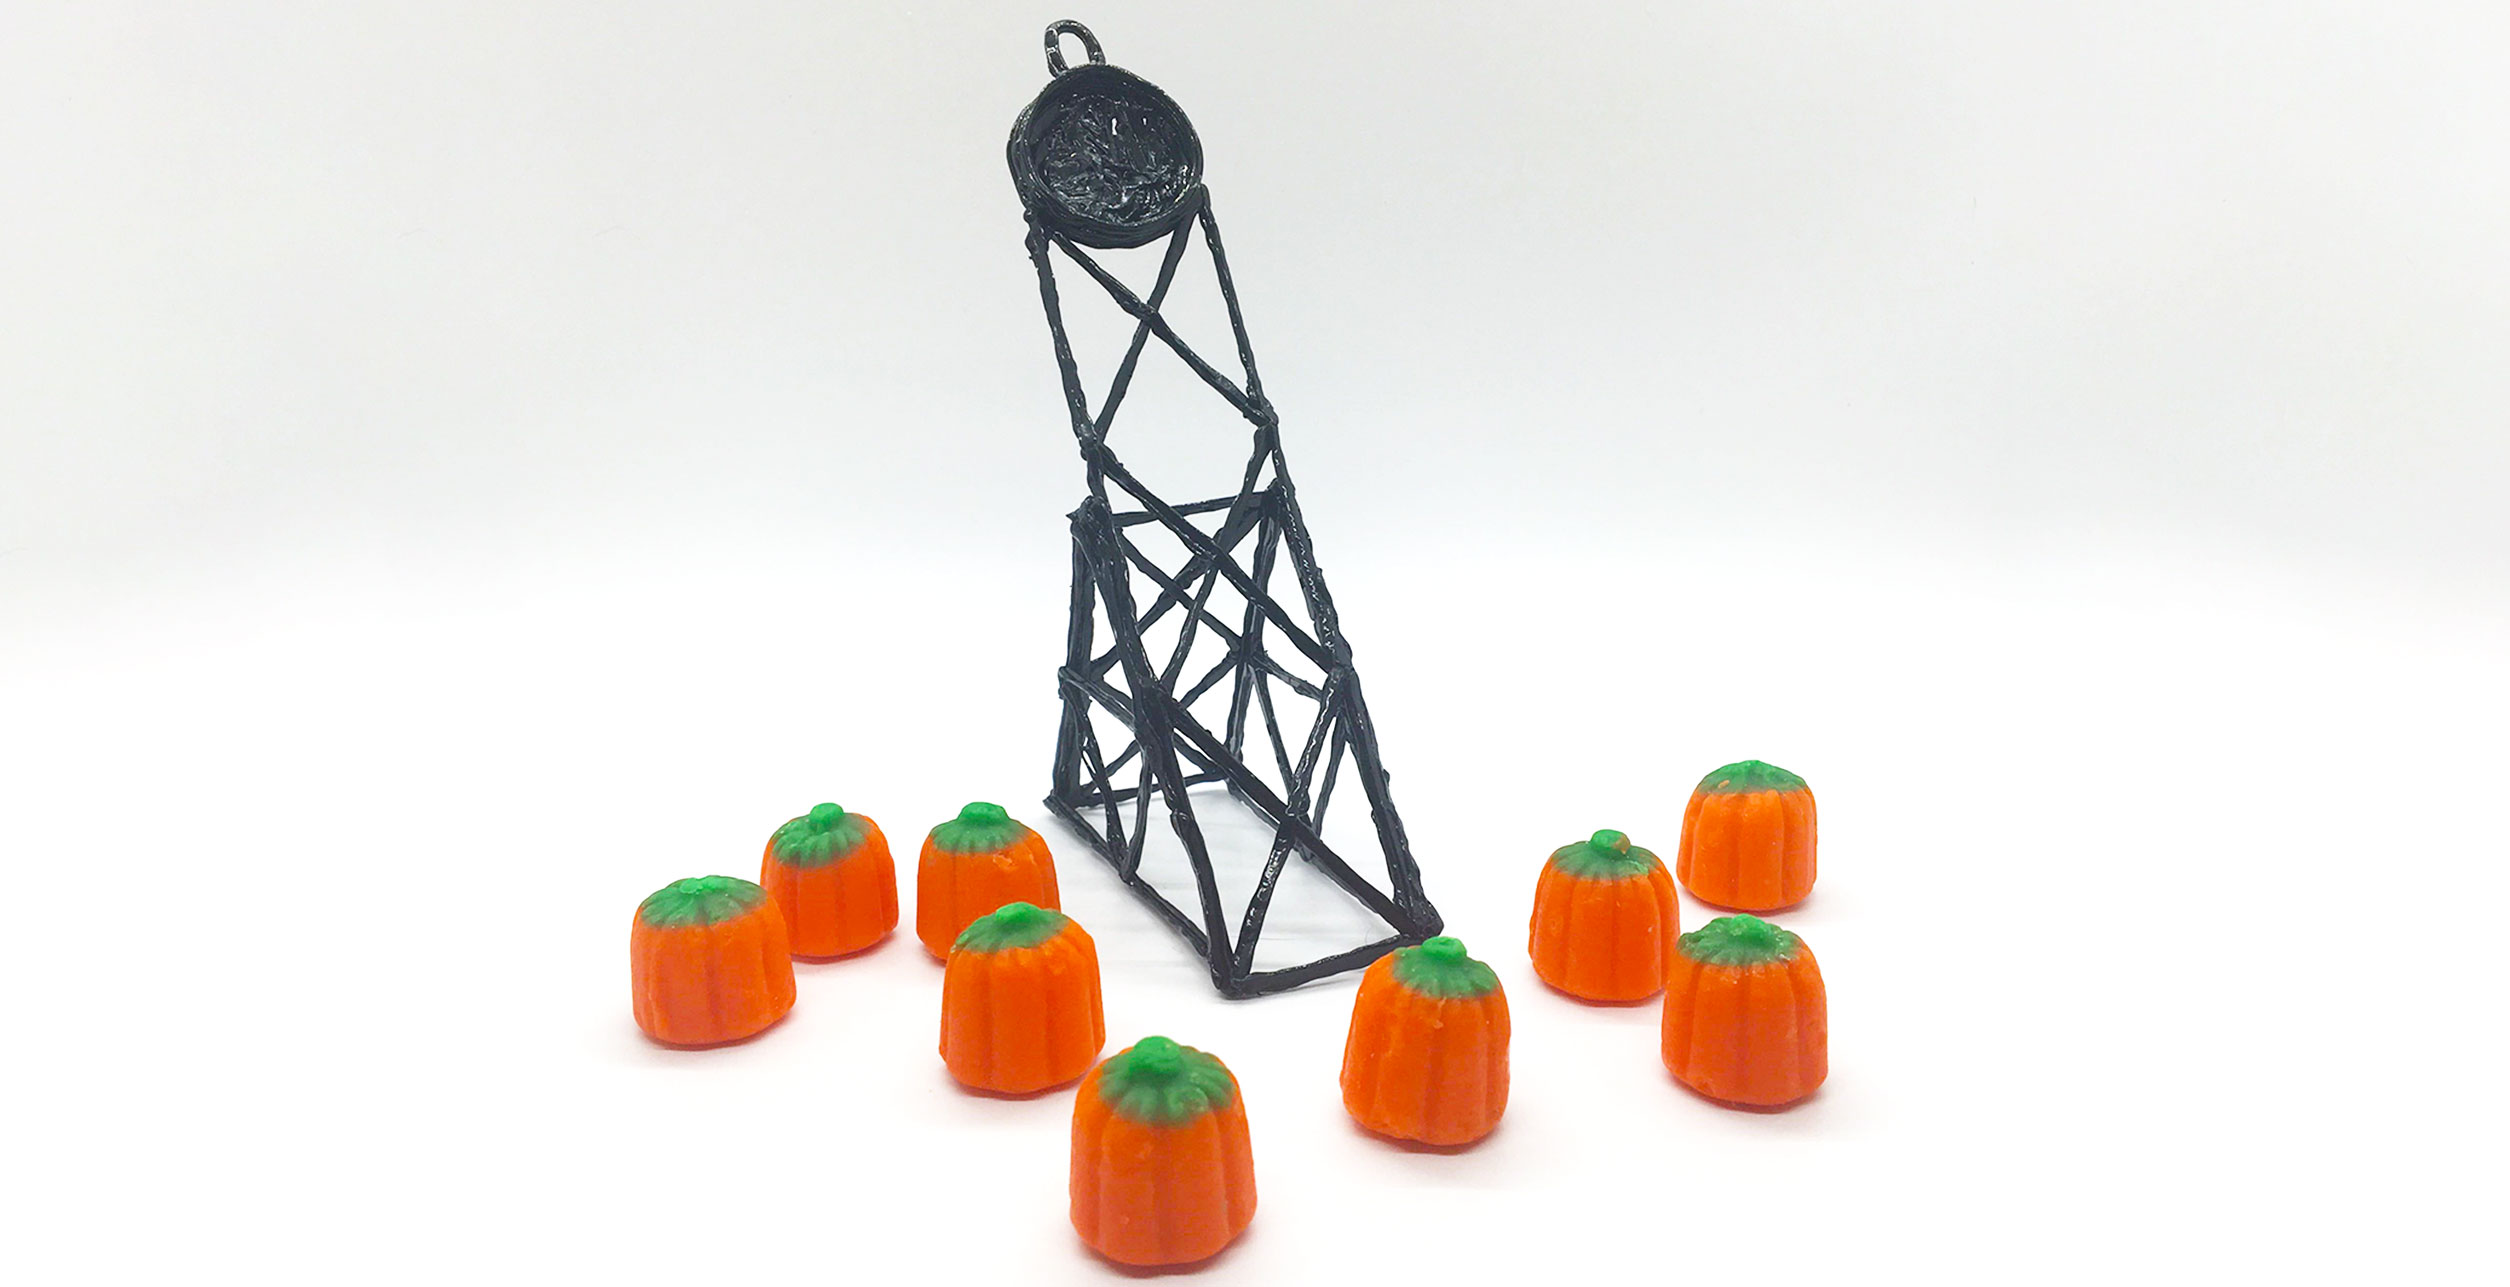 The main image depicts a small catapult made with the 3Doodler pen, and some mini mellowcreme pumpkins for launching with the catapult.